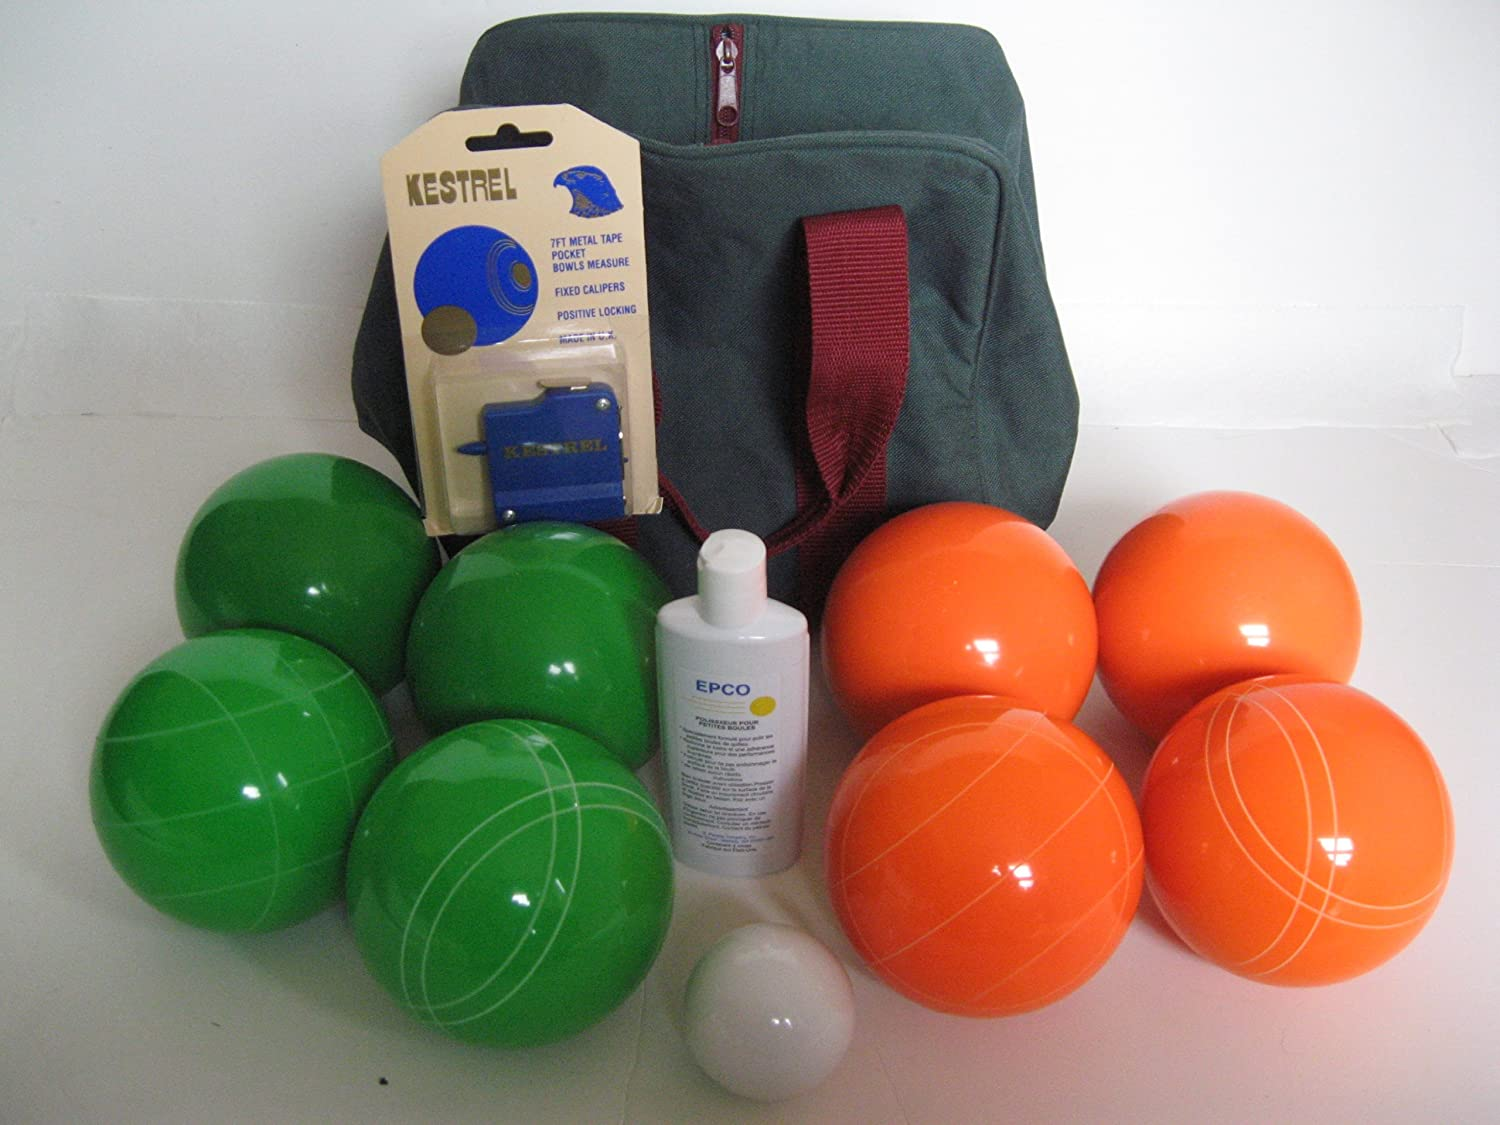 Premium Quality Basic EPCO Bocce package – 107mm Green and Orange balls, qual… günstig bestellen